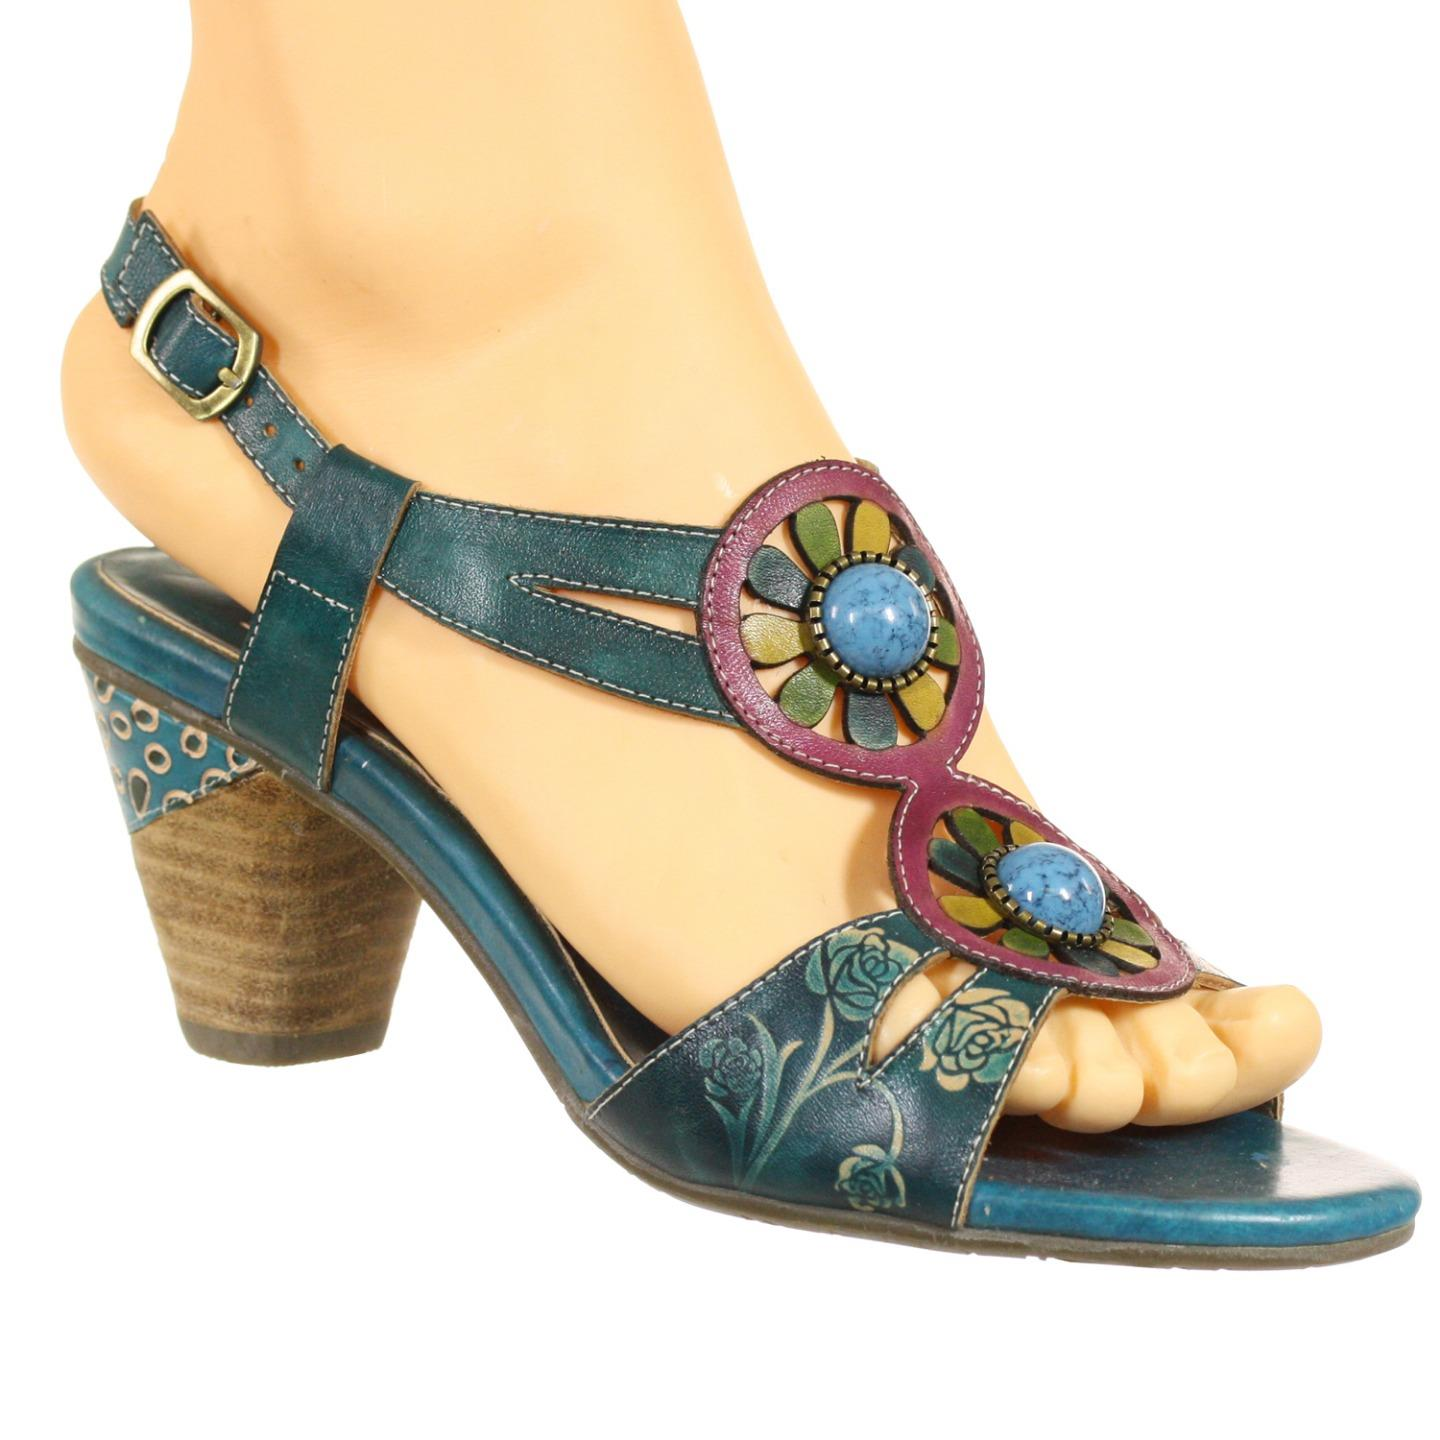 L'Artiste By Spring Step Leonora Women's Sandals Turquoise Multi EU 37 US 7 by Spring Step